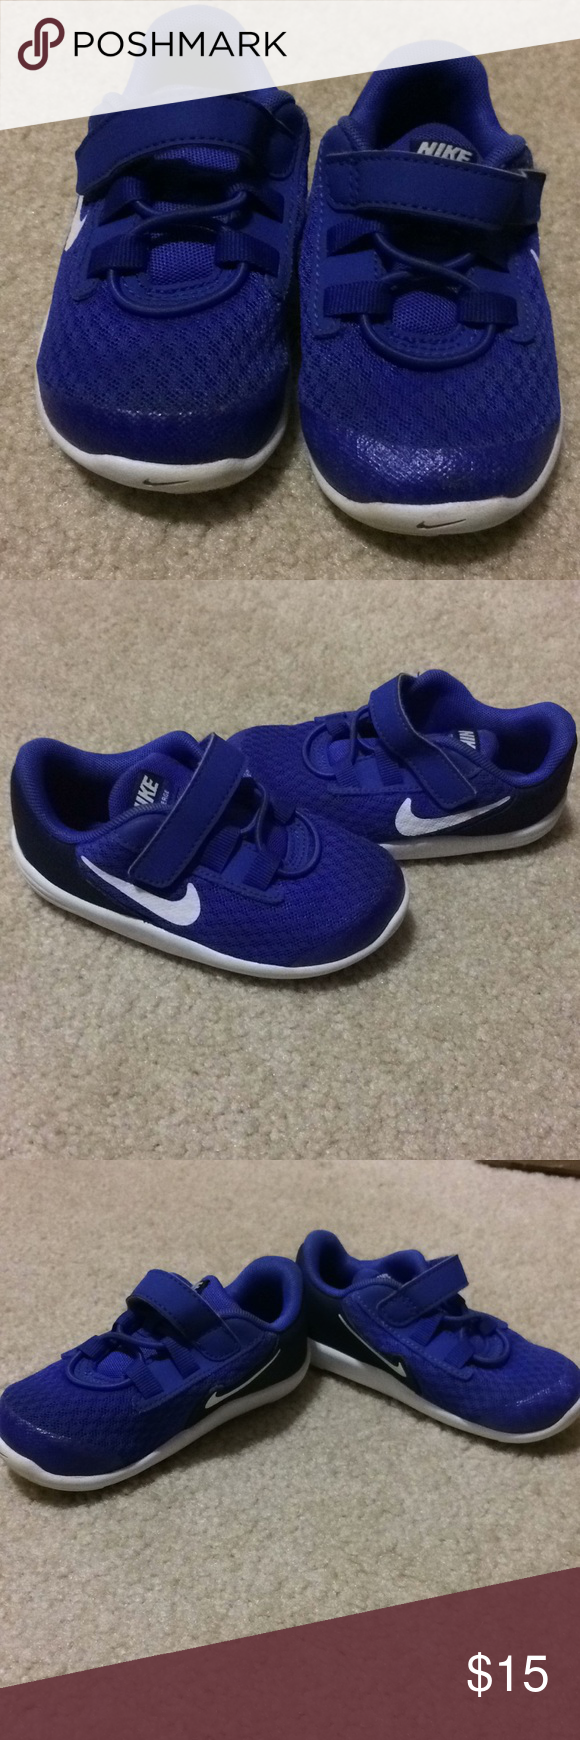 11624eec1cd Toddler Nike Coverage Tennis Shoe size 7 Excellent pair of Nike Coverage  Toddler boy it girl tennis shoe size 7 in great condition.